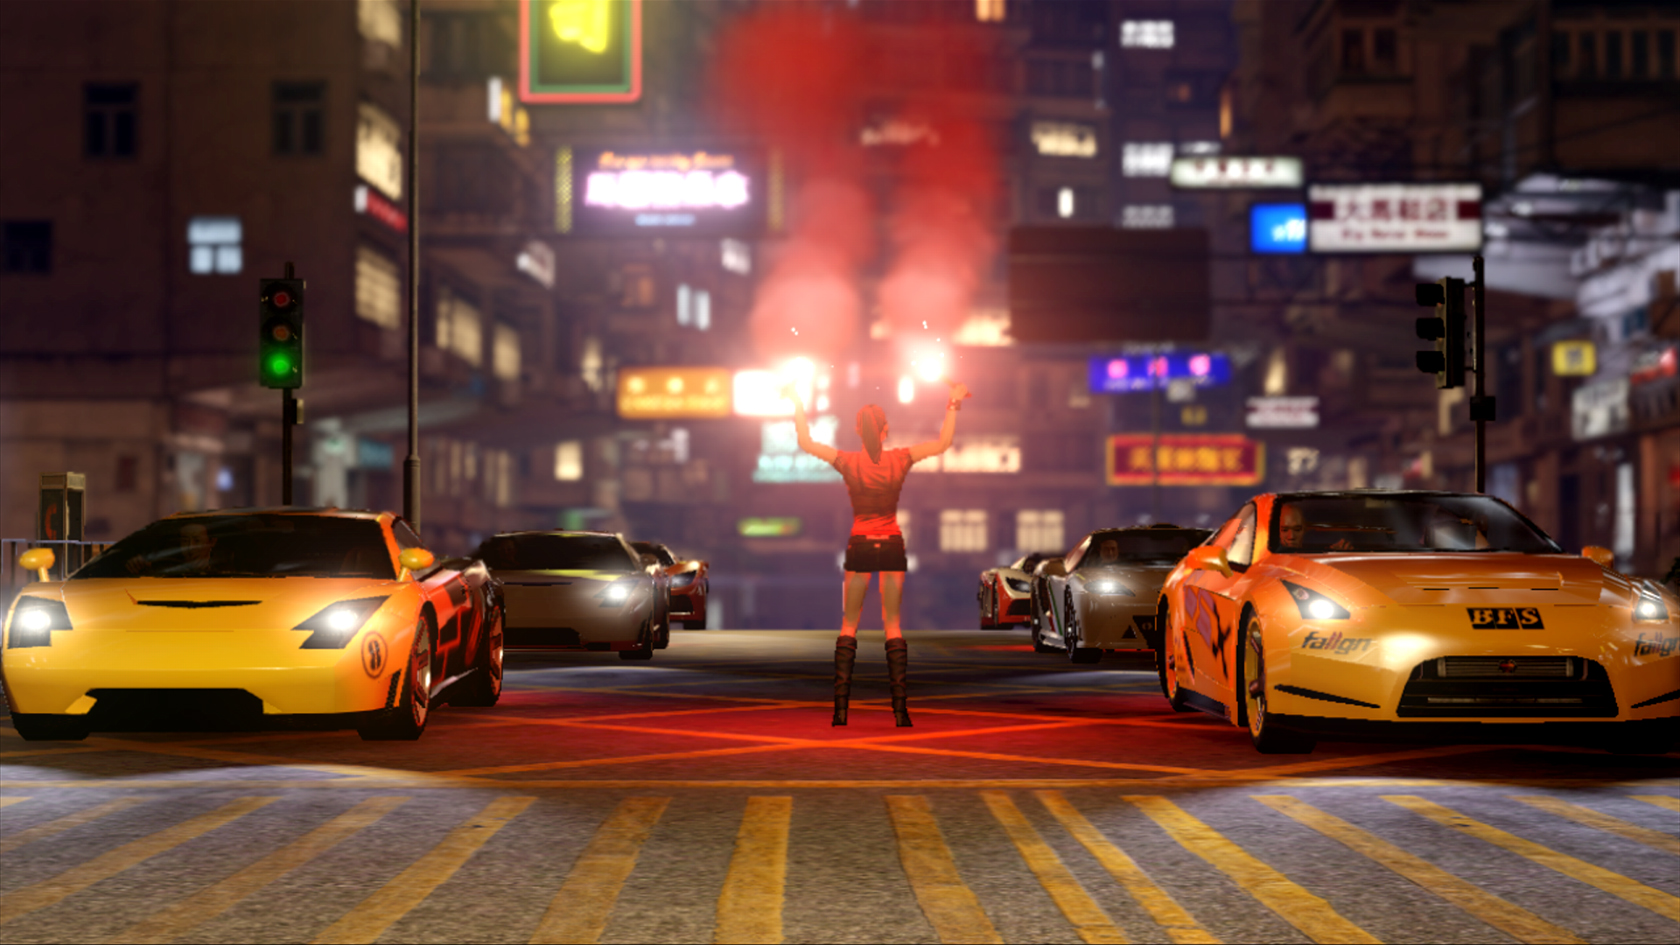 New Sleeping Dogs Screenshots Show Cars Bikes And Explosion